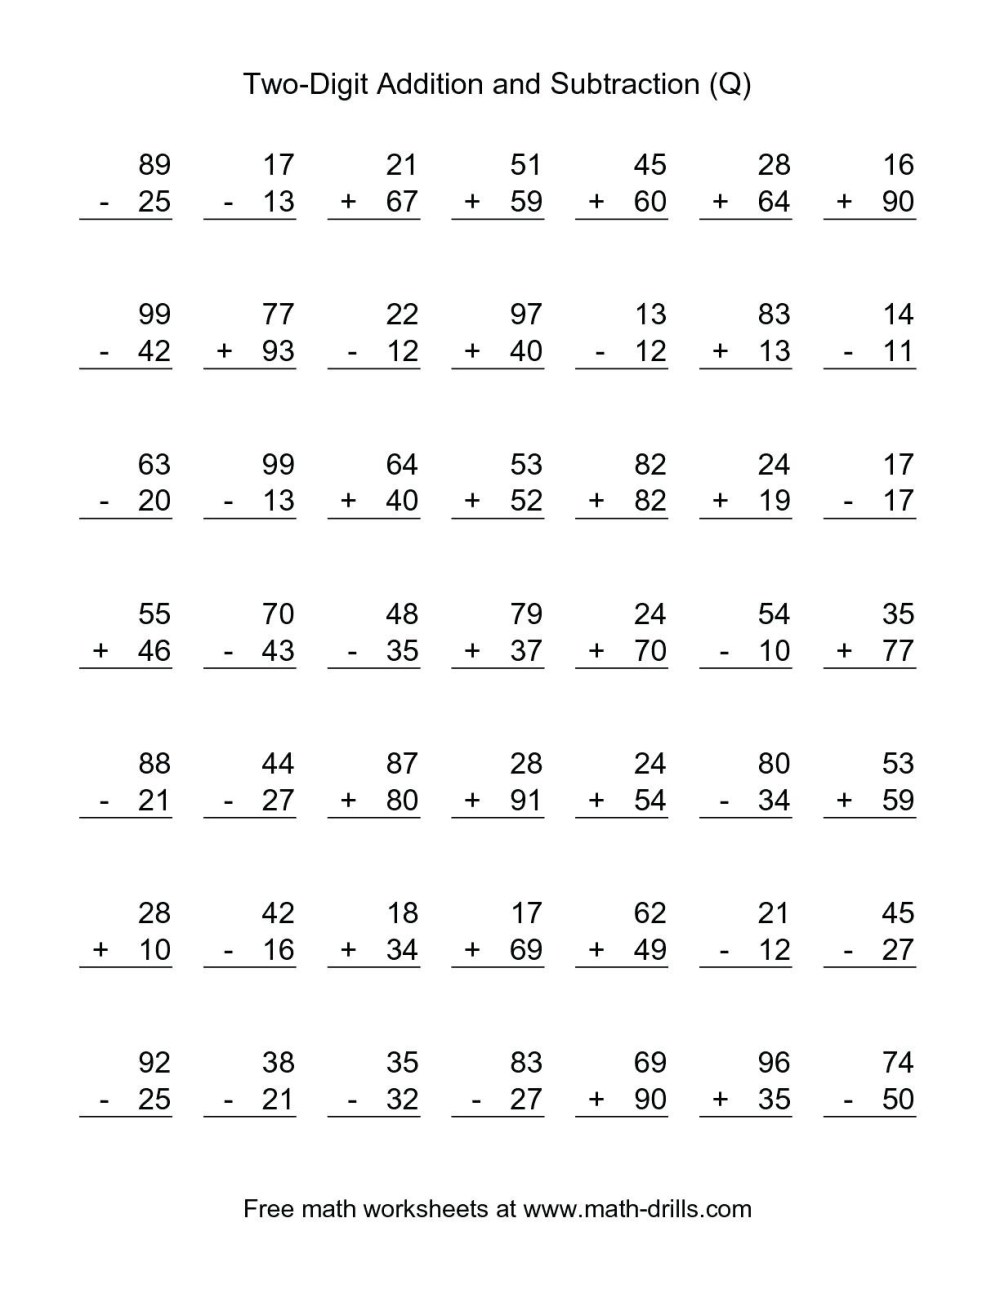 medium resolution of 4 Free Math Worksheets Second Grade 2 Addition Add 3 Digit Numbers In  Columns No Regrouping - apocalomegaproductions.com